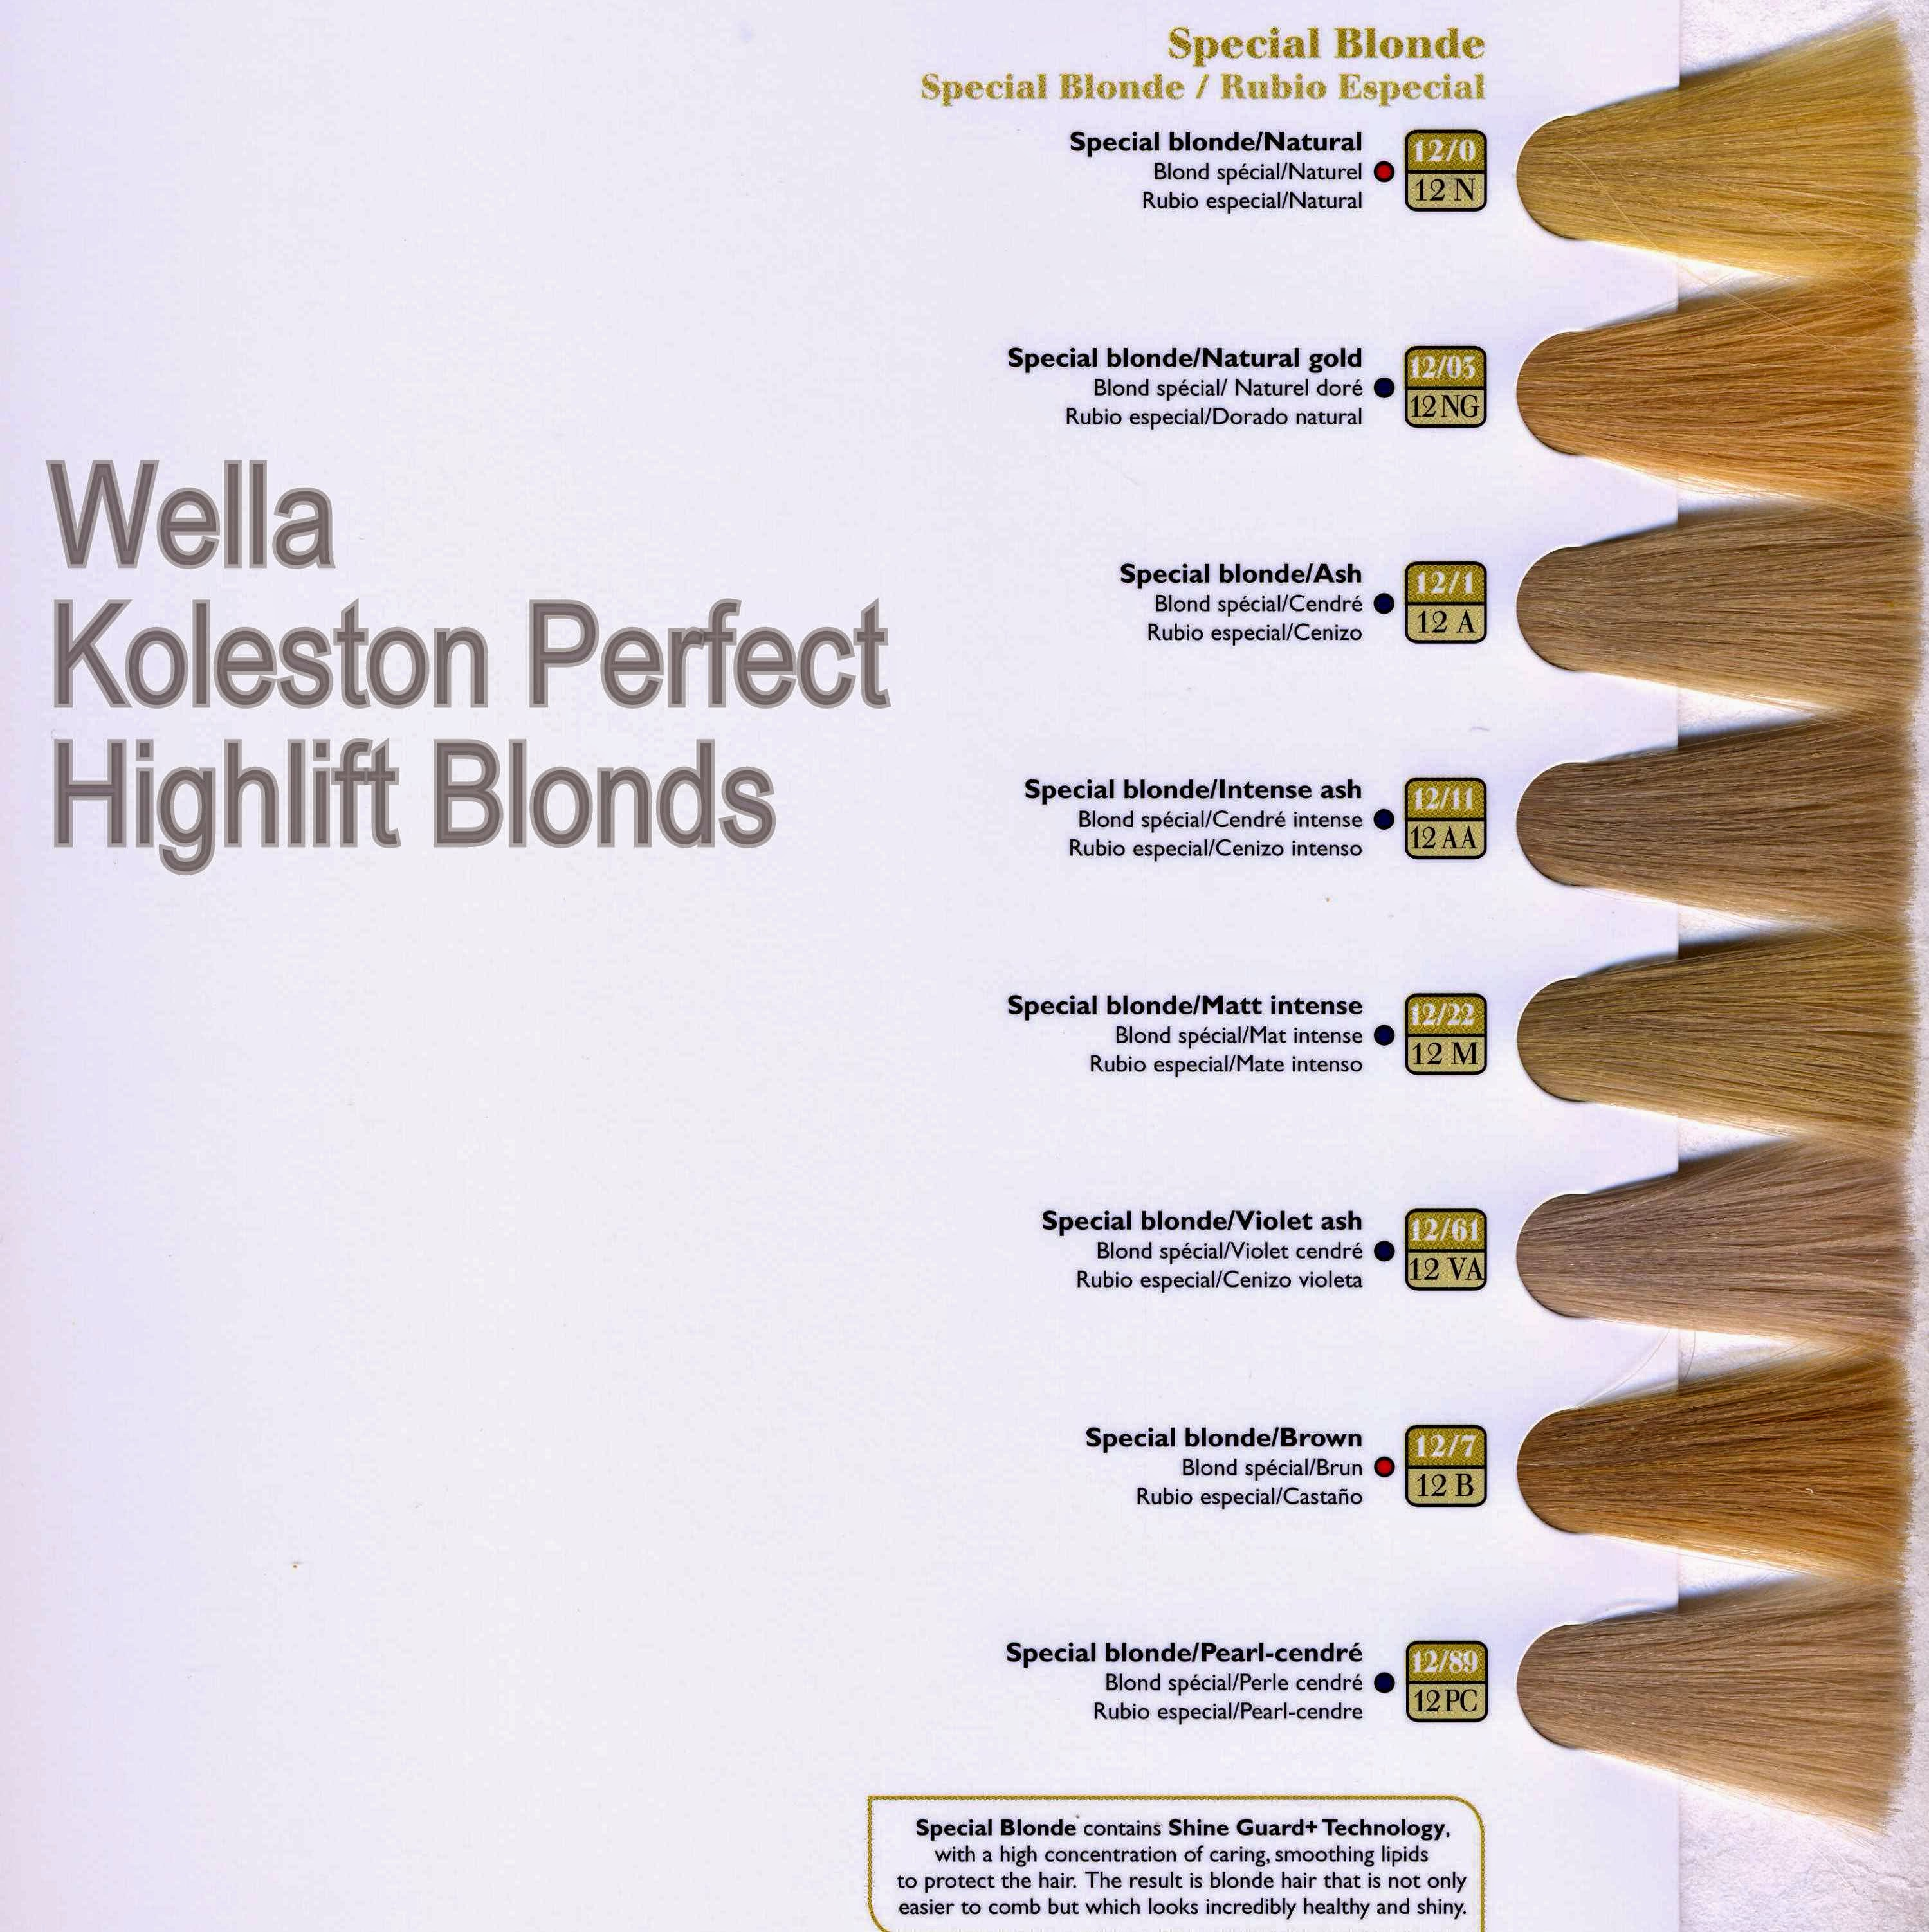 Wella color fresh shade chart gallery free any chart examples wella color fresh shade chart choice image free any chart examples wella color fresh shade chart nvjuhfo Image collections